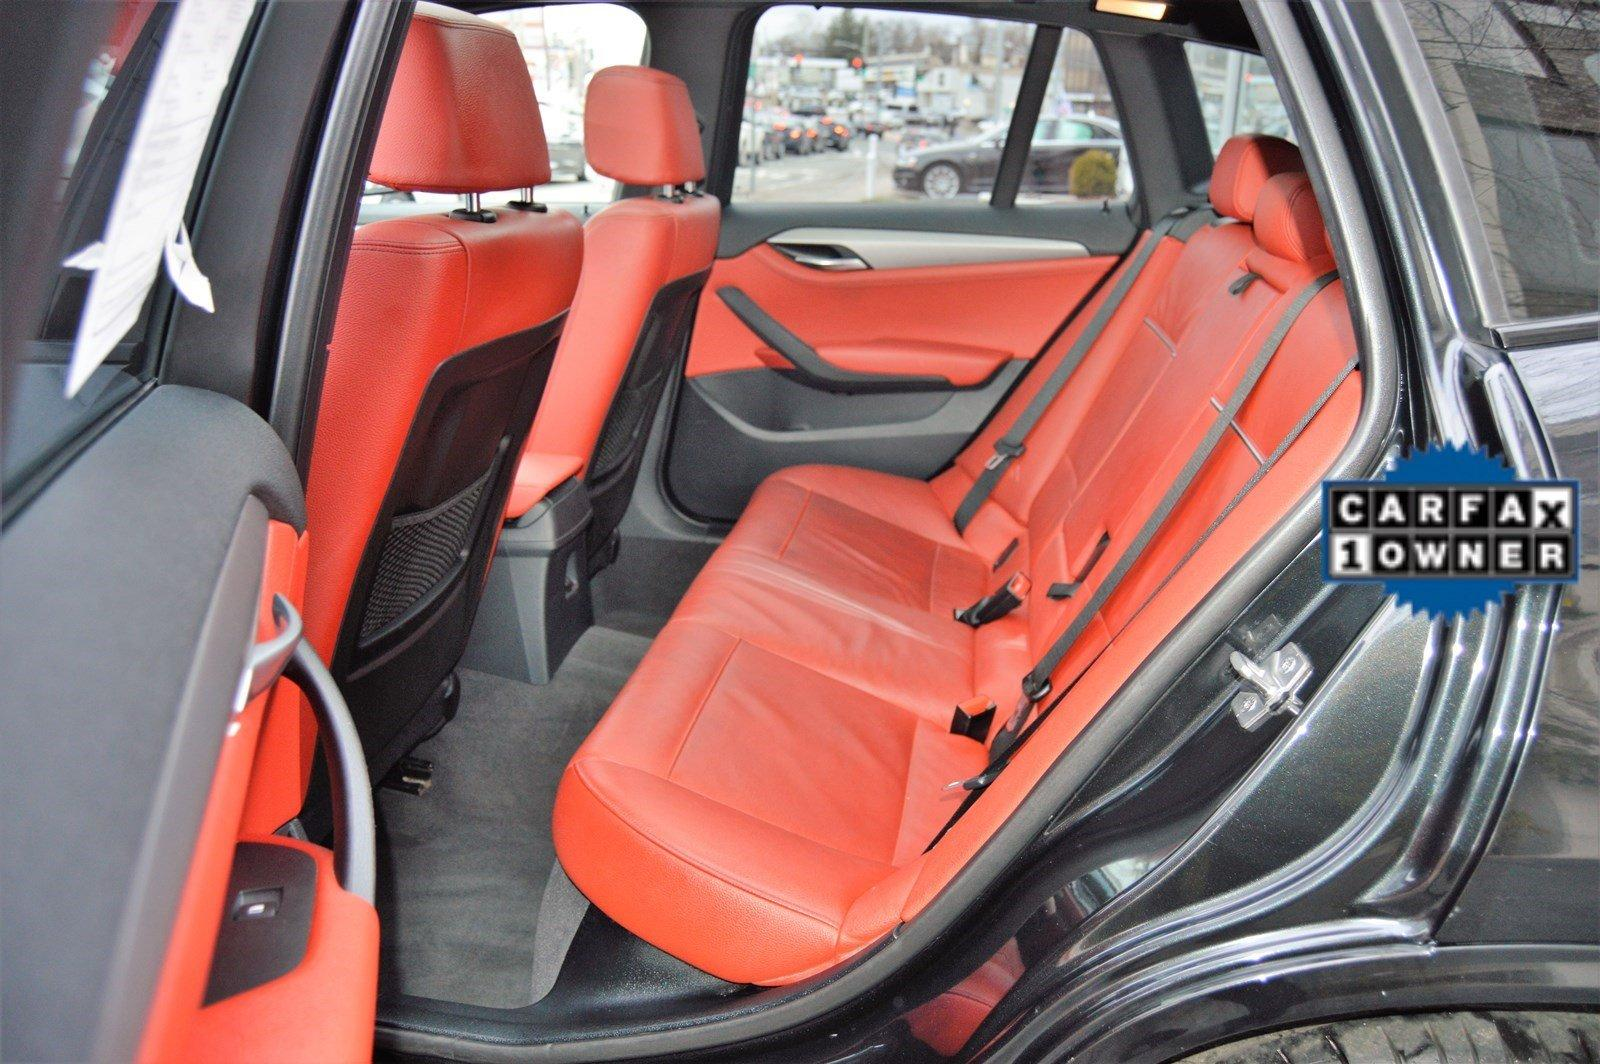 2014 Bmw X1 Xdrive28i Red Interior Stock 2787 For Sale Near Great Neck Ny Ny Bmw Dealer